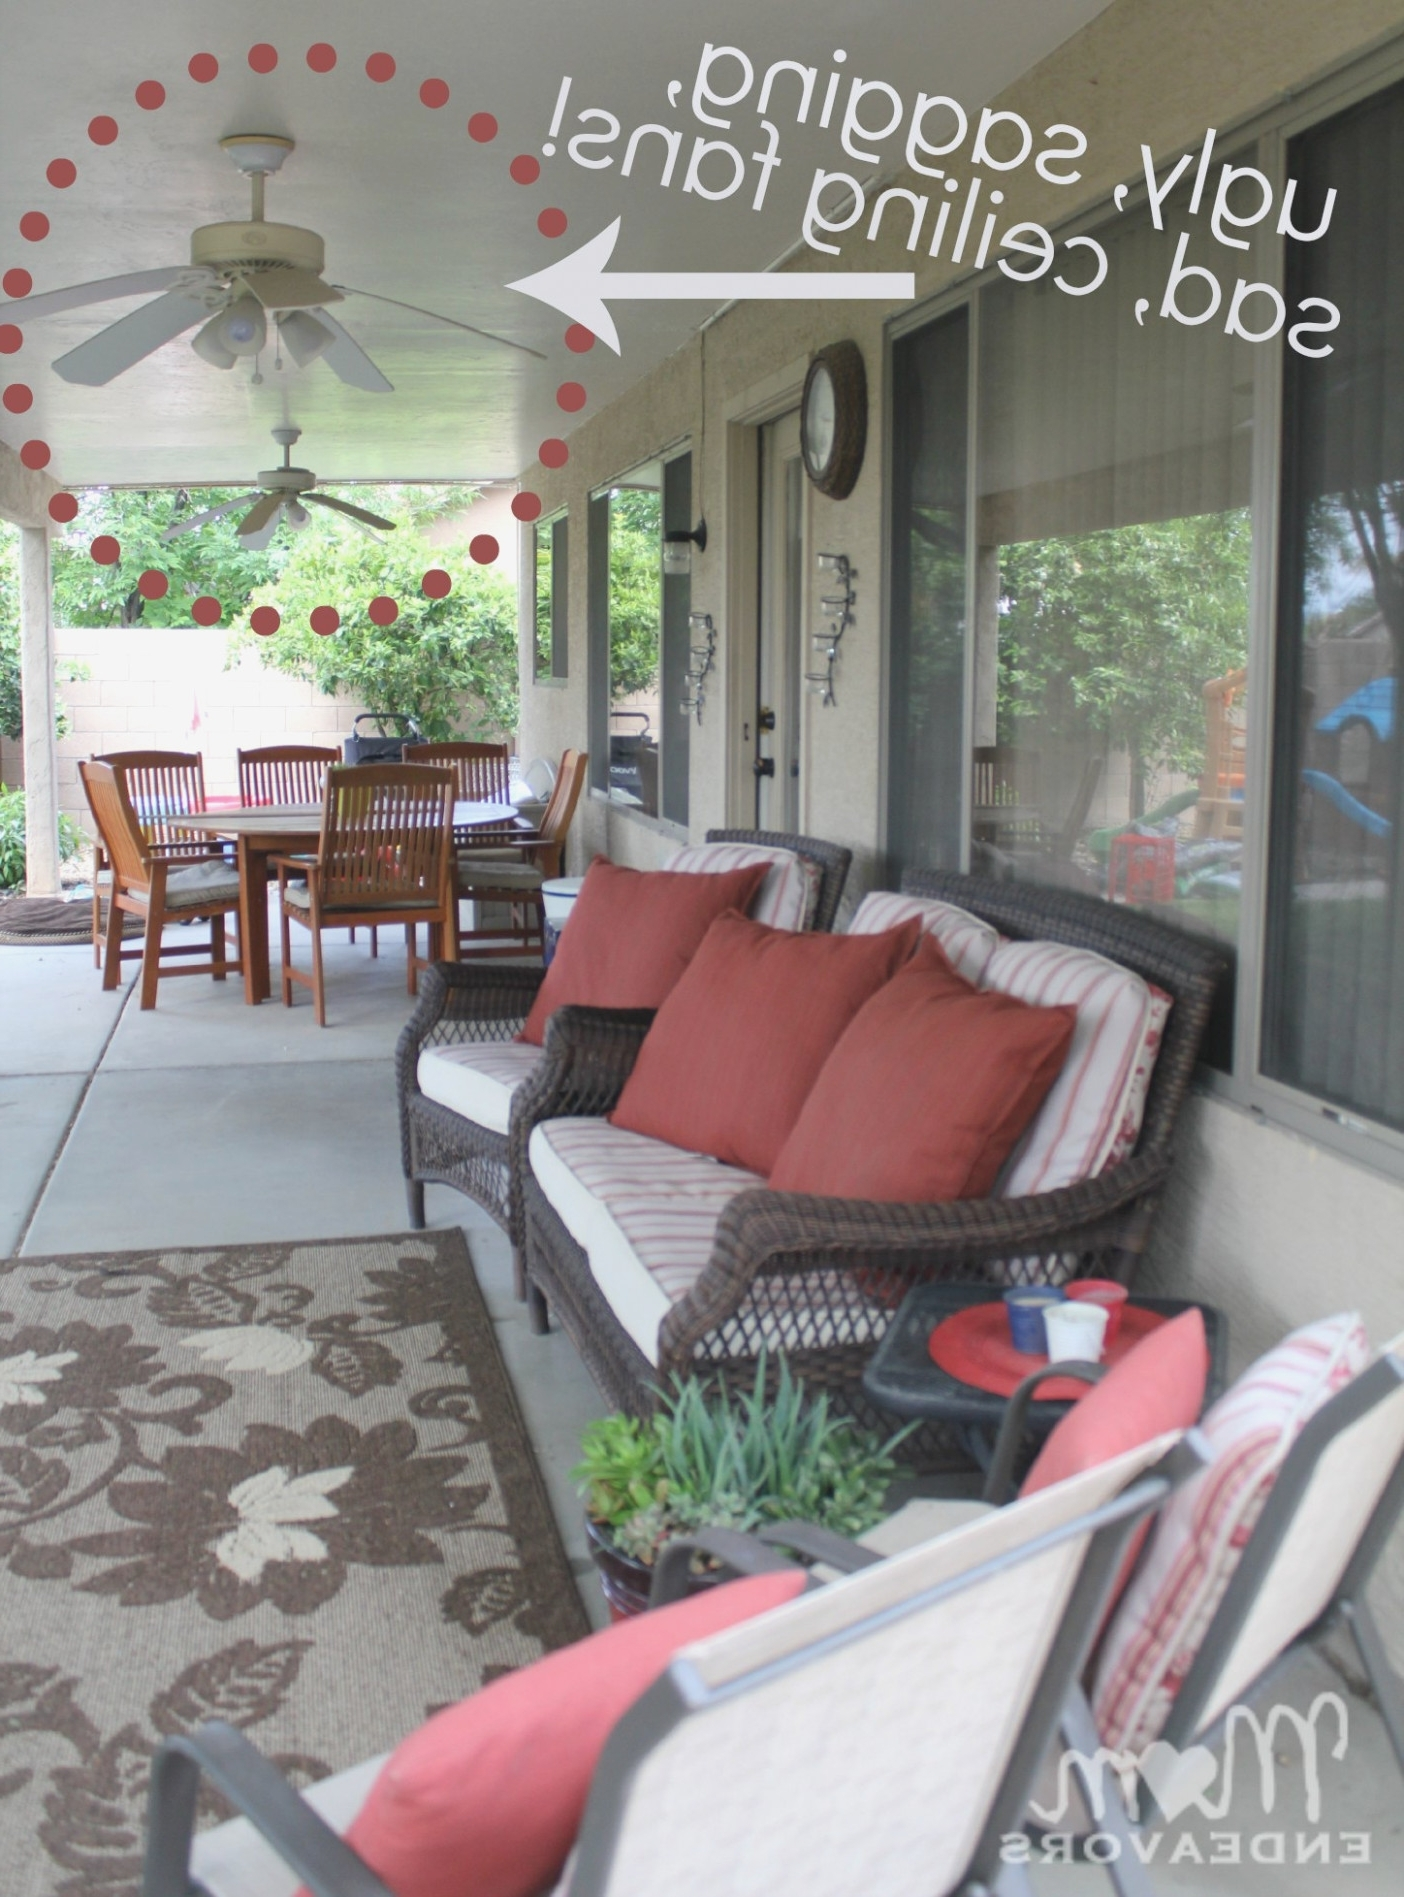 Patio Lighting – Outdoor Patio Ceiling Fans – The Interior Design Ideas With Regard To Famous Outdoor Ceiling Fans For Patios (View 18 of 20)